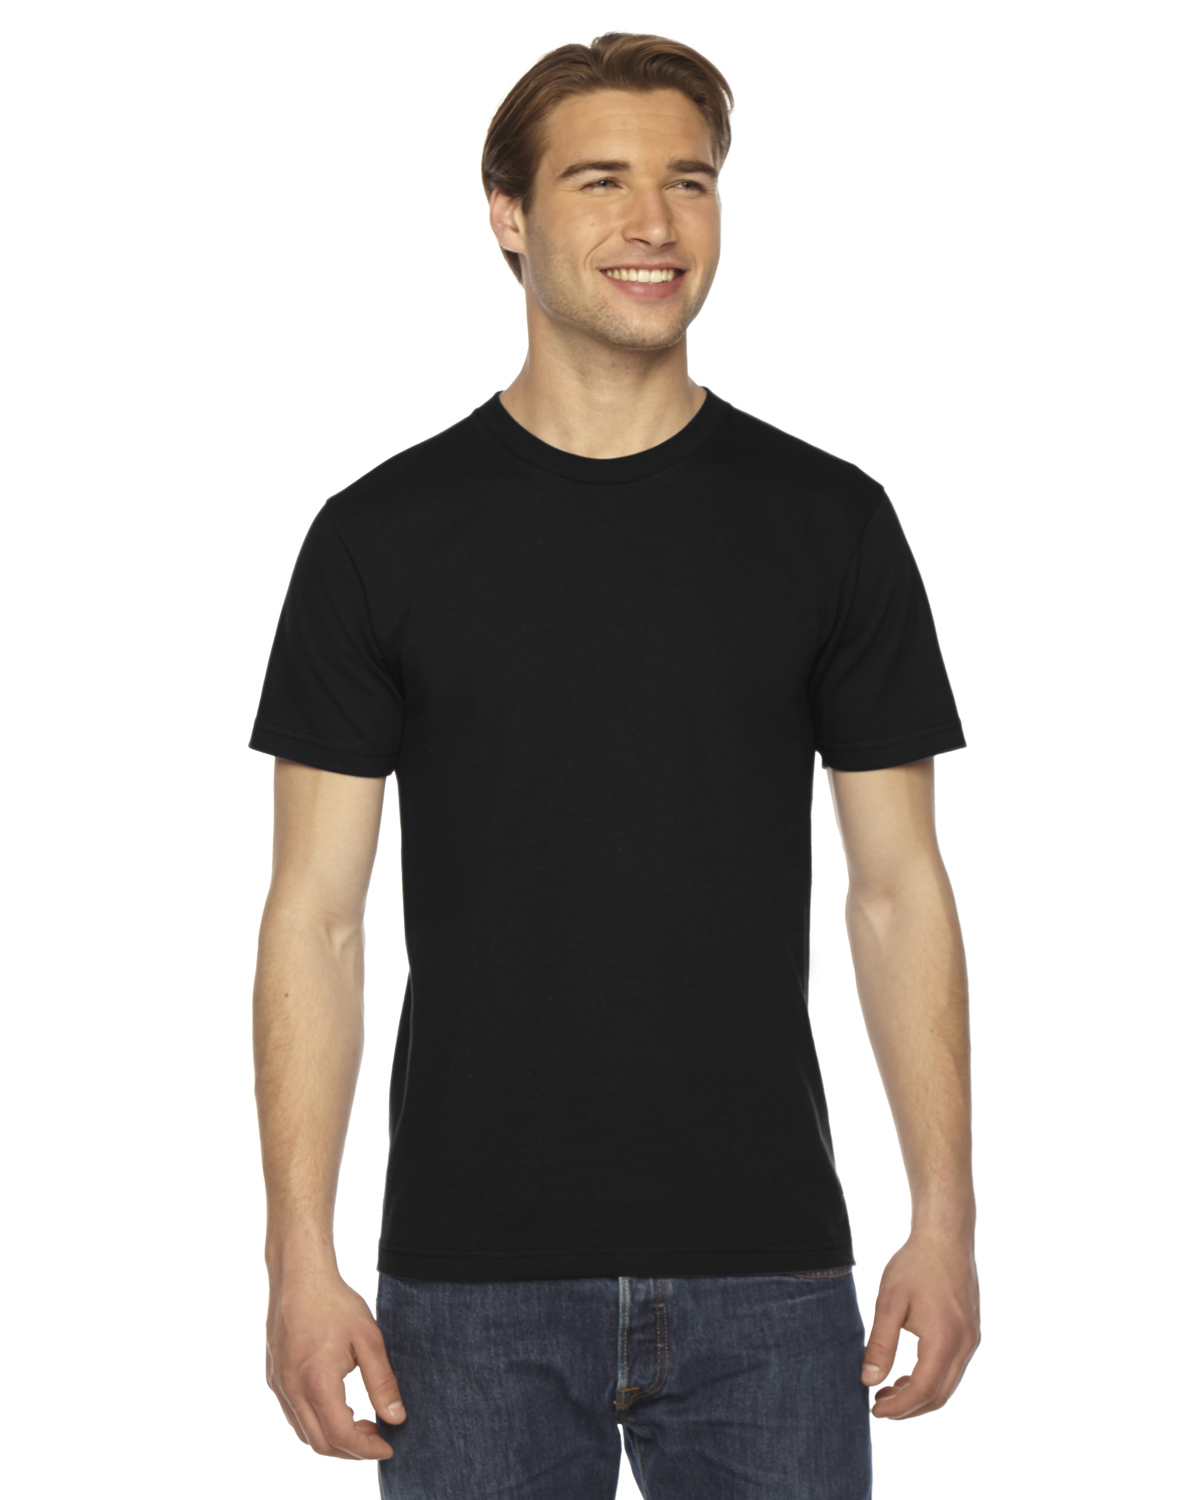 American Apparel Unisex Short-Sleeve Hammer T-Shirt